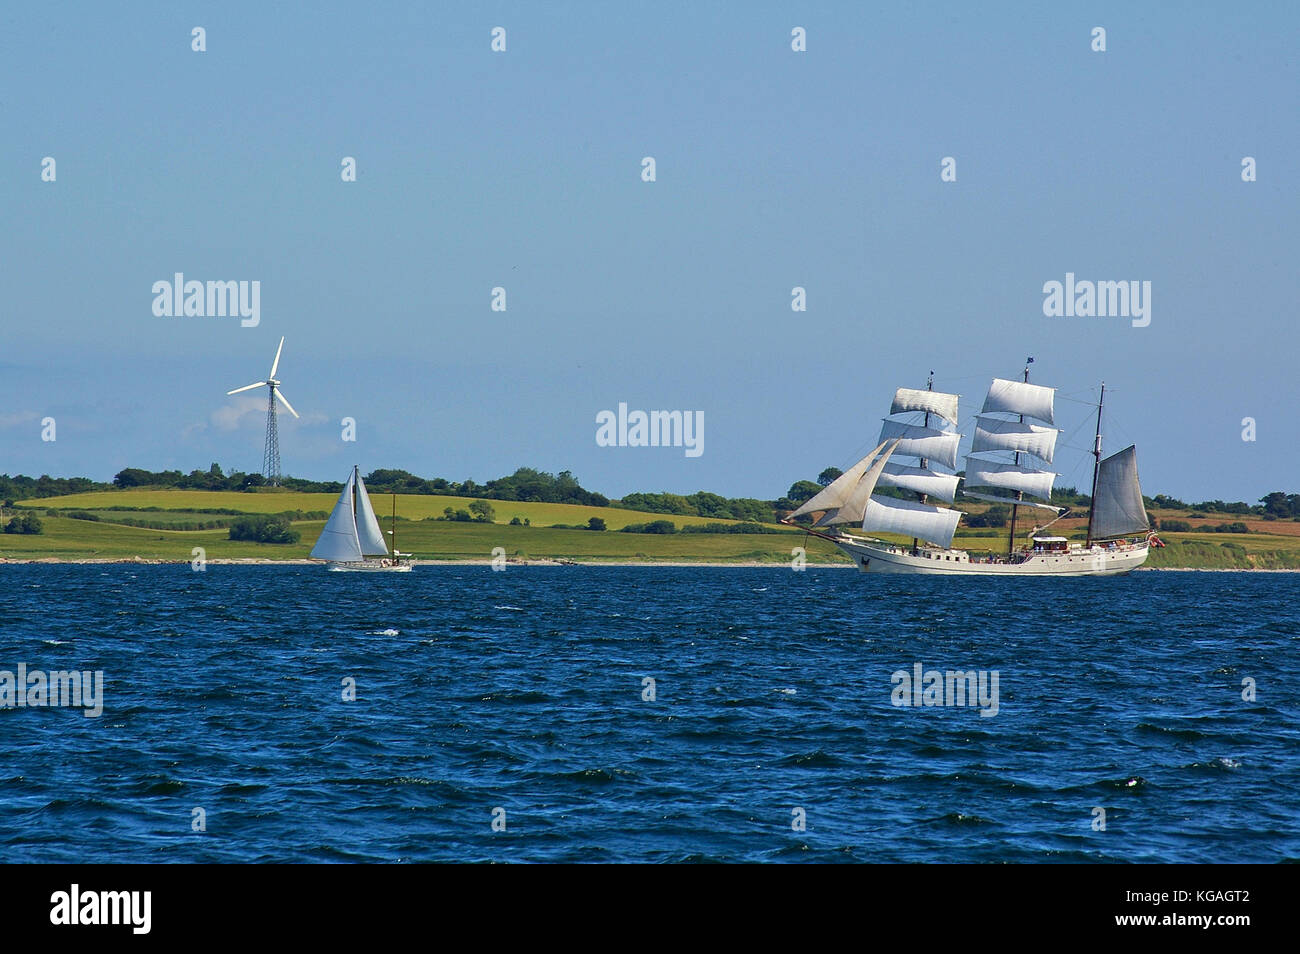 Traditional square-rigged tall ship and modern two-masted yacht at sea in front of a green seashore with fields - Stock Image